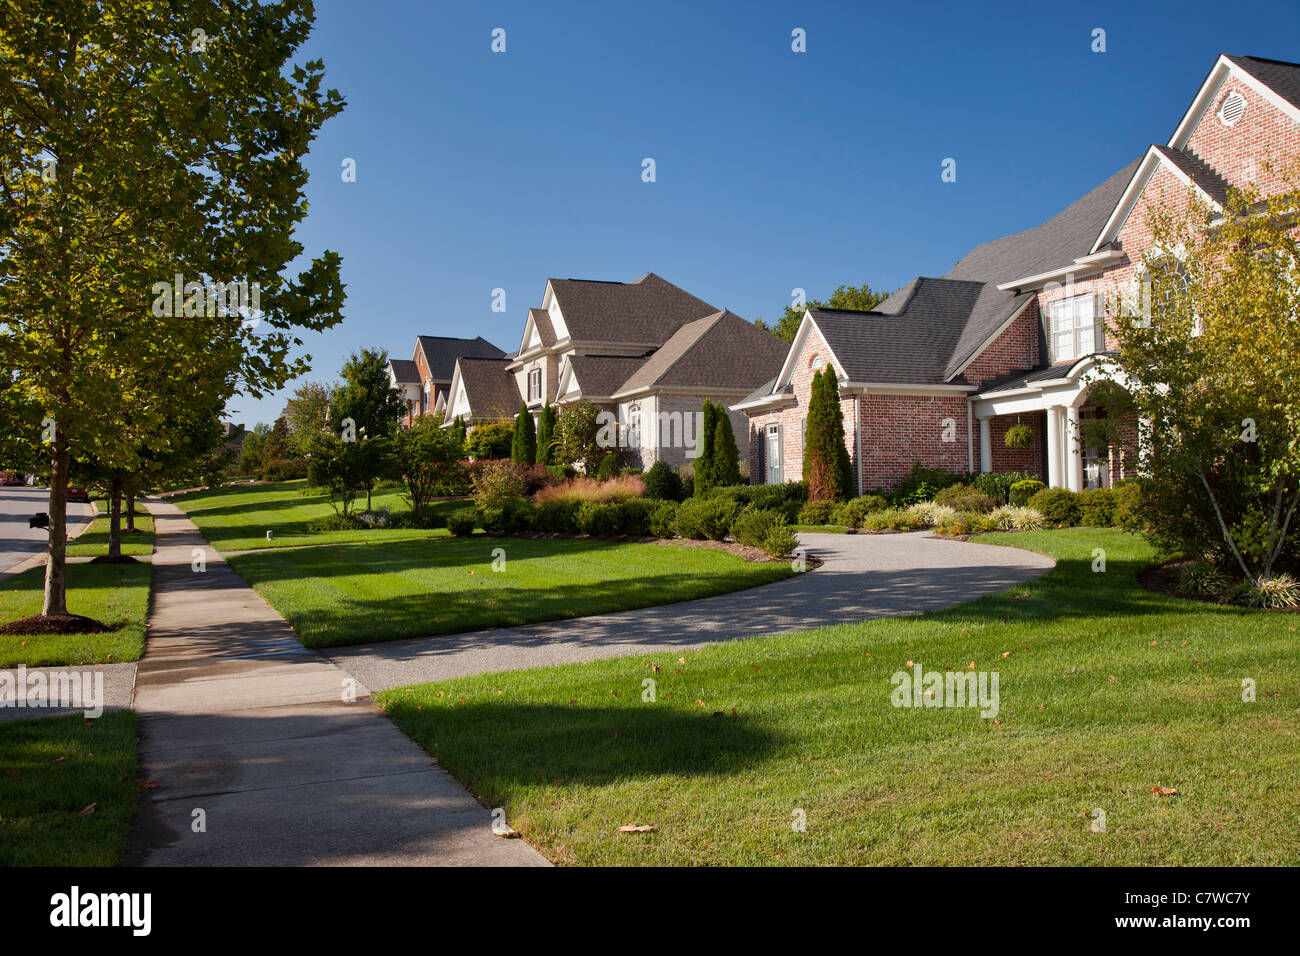 Typical Homes In A Nice Subdivision Near Nashville Tennessee USA